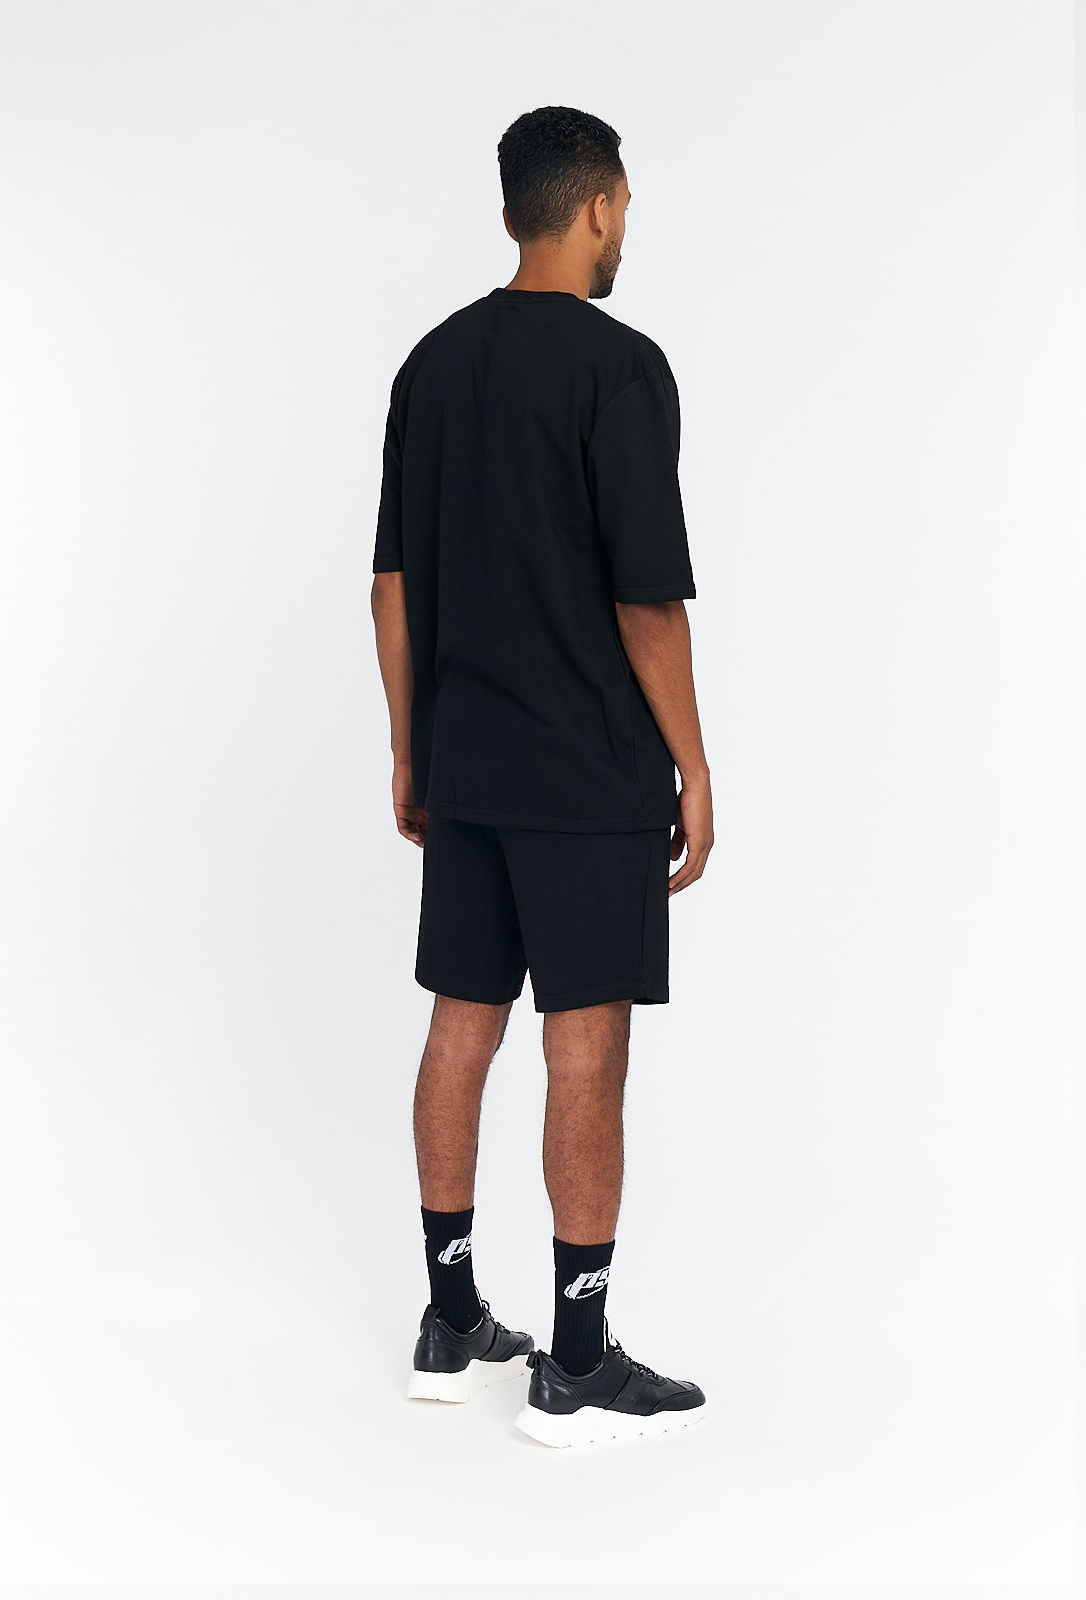 PS Black Circle T-shirt